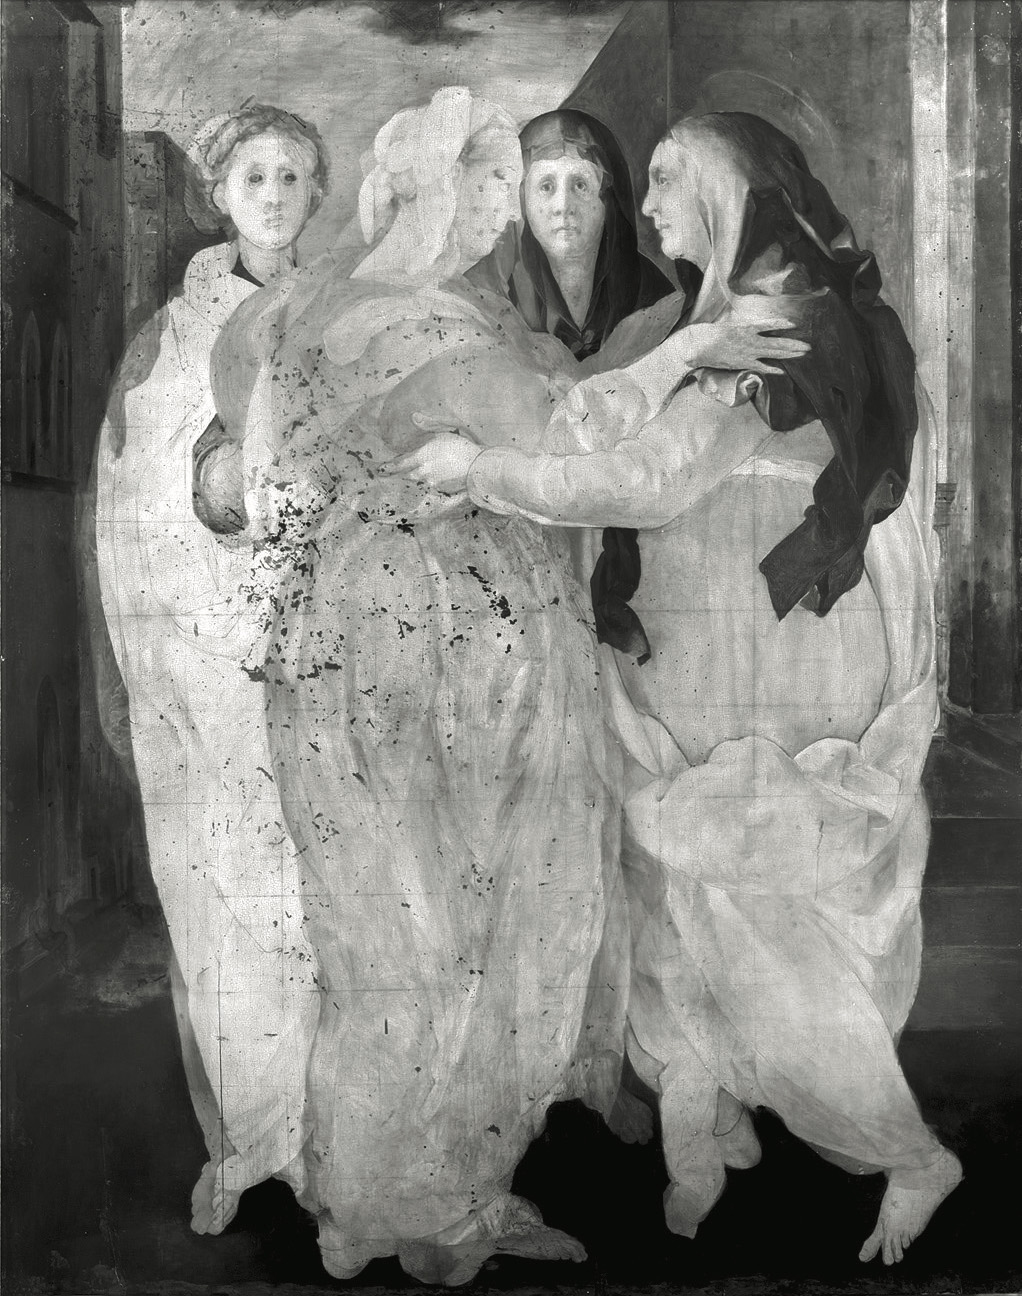 Infrared (black and white) image of four women in togas greeting one another. A halo is visible above the head of the woman on the right.